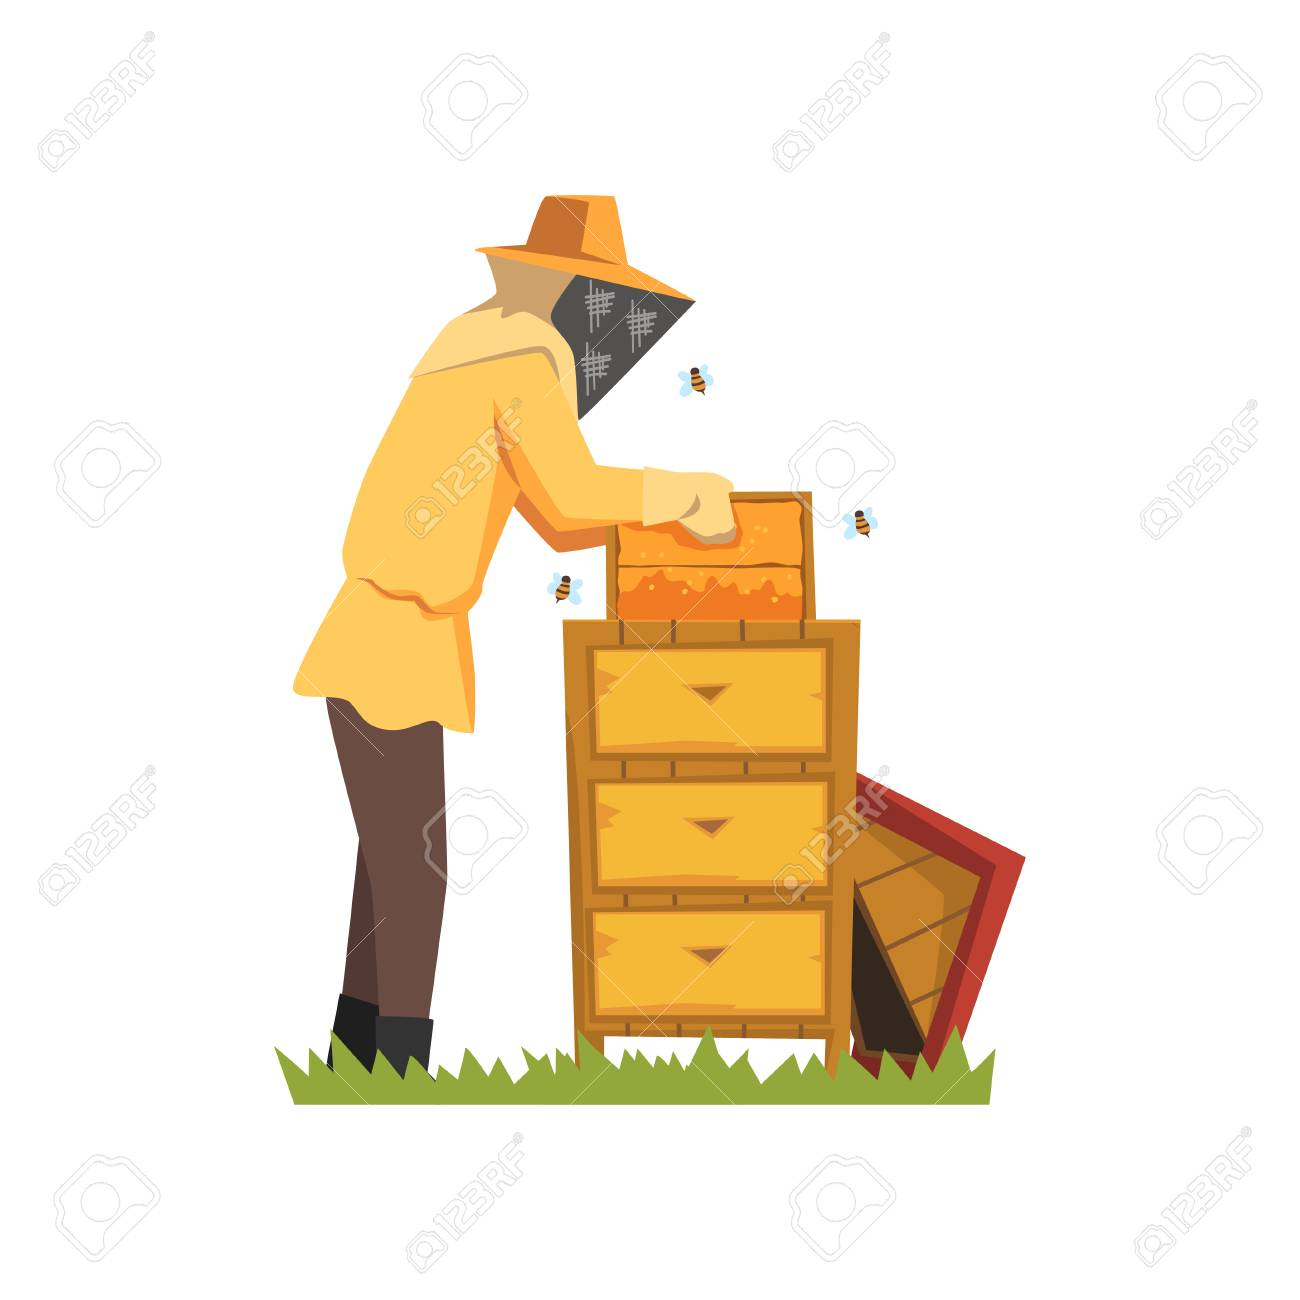 Beekeeper in a protective suit vector Illustration on a white background - 100517286